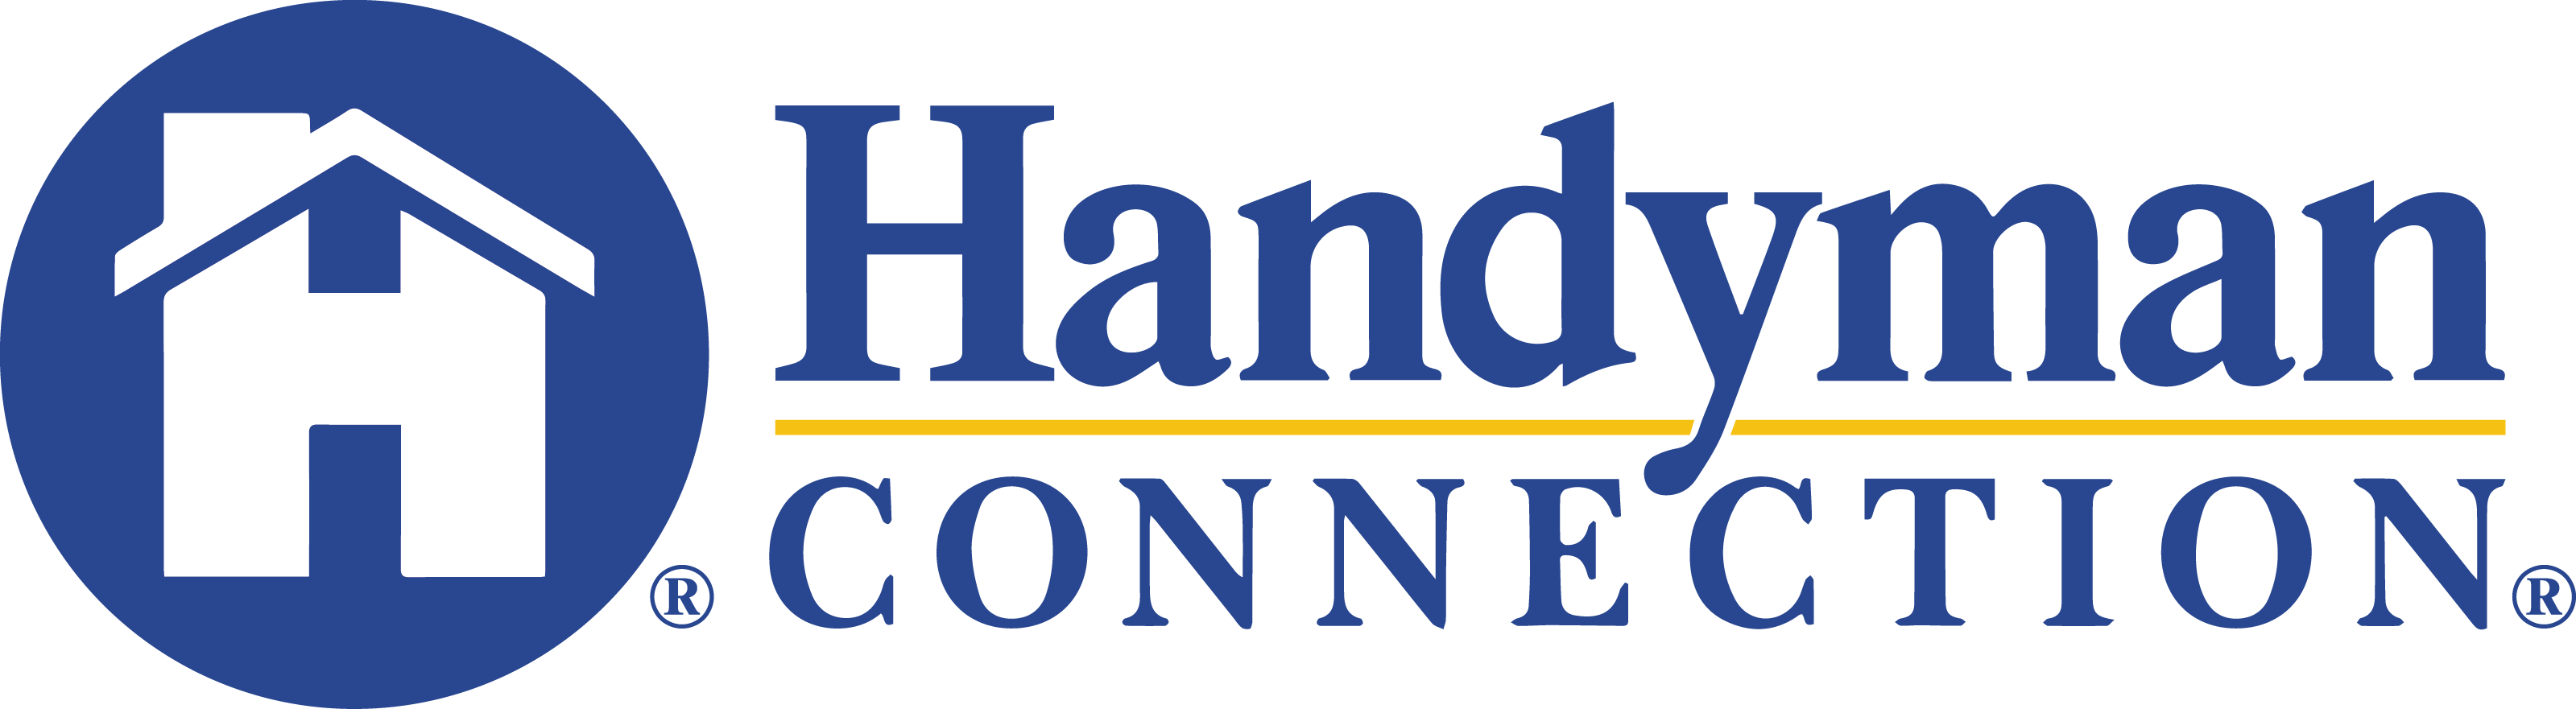 Handyman Connection of Charleston, SC